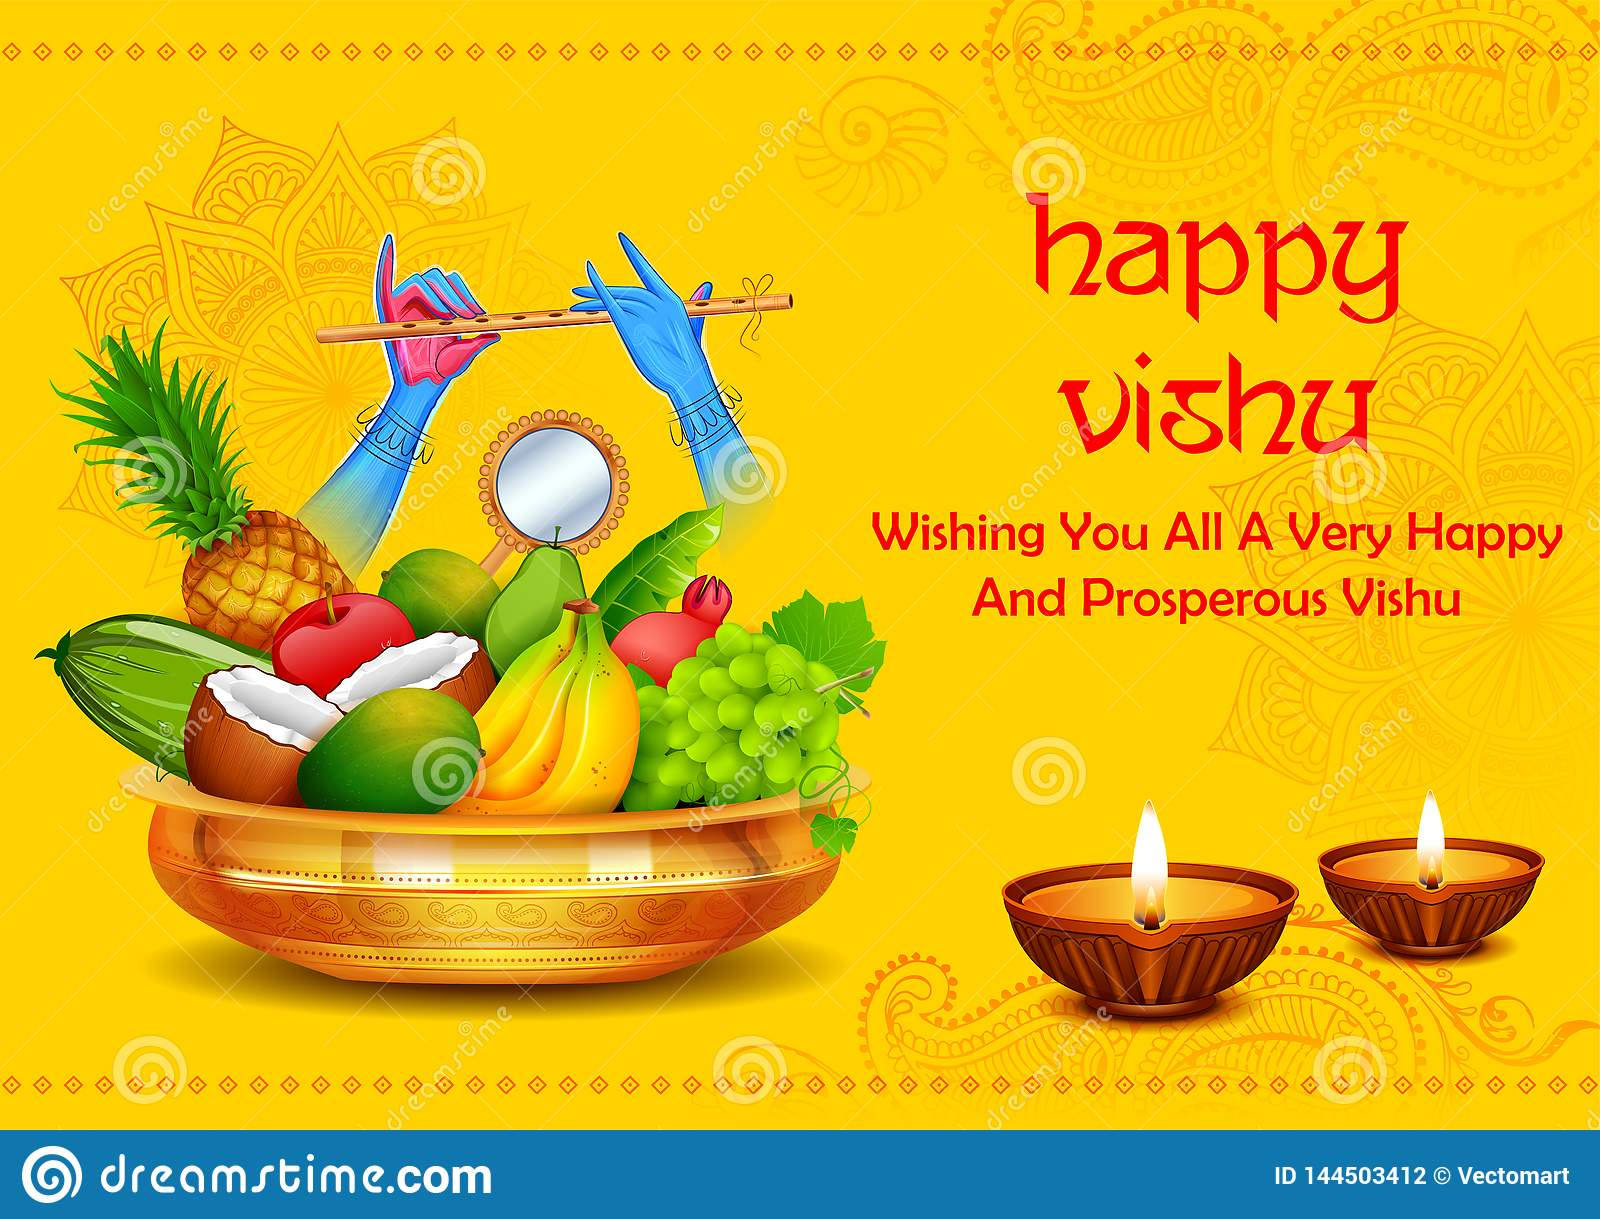 happy vishu new year hindu festival celebrated in the indian state of kerala stock vector illustration of hindu india 144503412 https www dreamstime com illustration happy vishu new year hindu festival celebrated indian state kerala happy vishu new year hindu festival image144503412